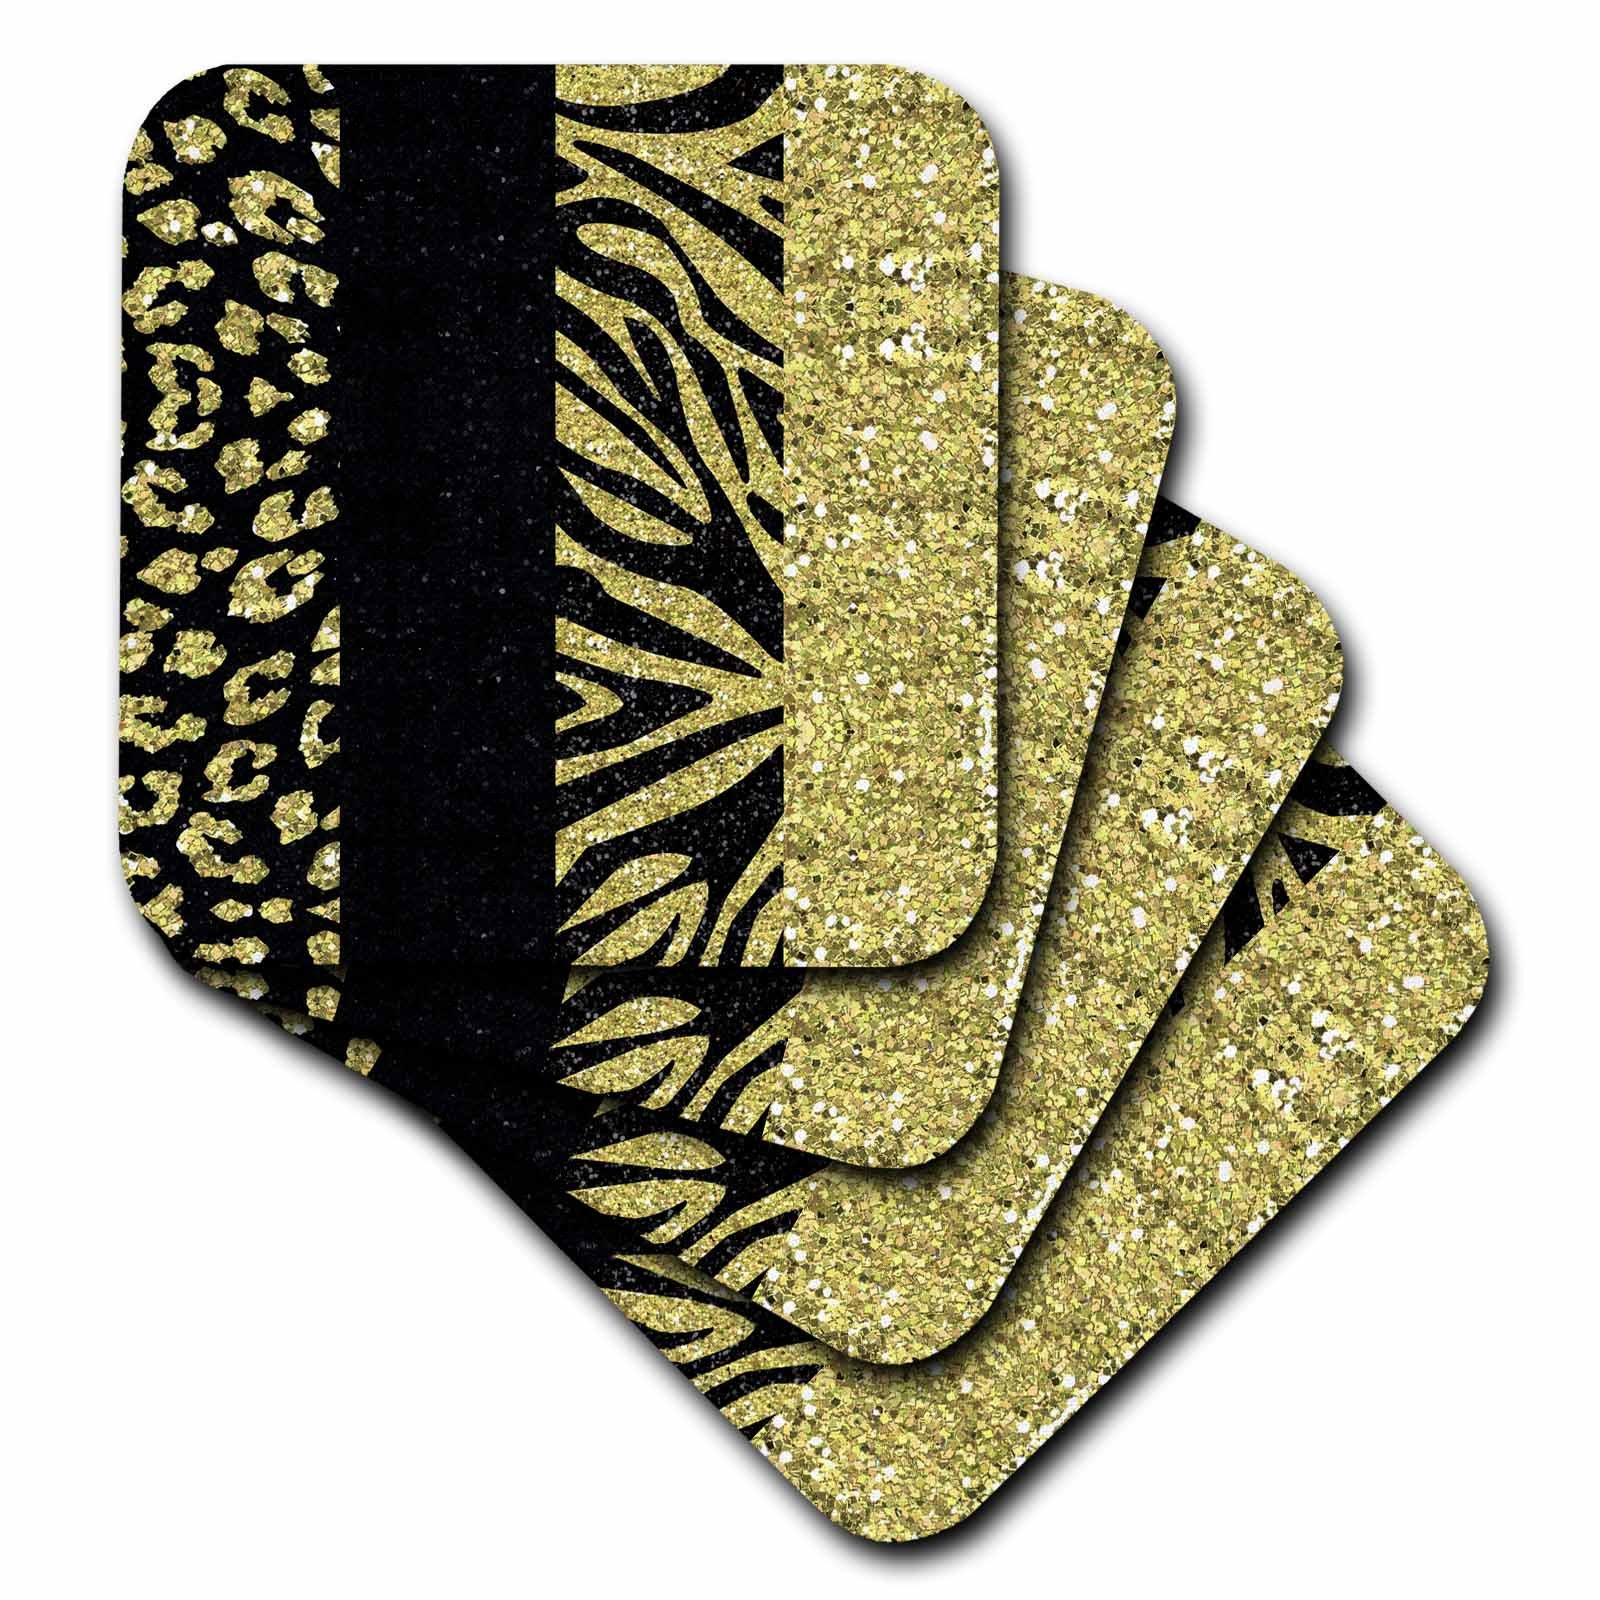 3dRose cst_128556_2 Printed Glitter Effect Gold and Black Animal Print Leopard and Zebra Soft Coasters, Set of 8